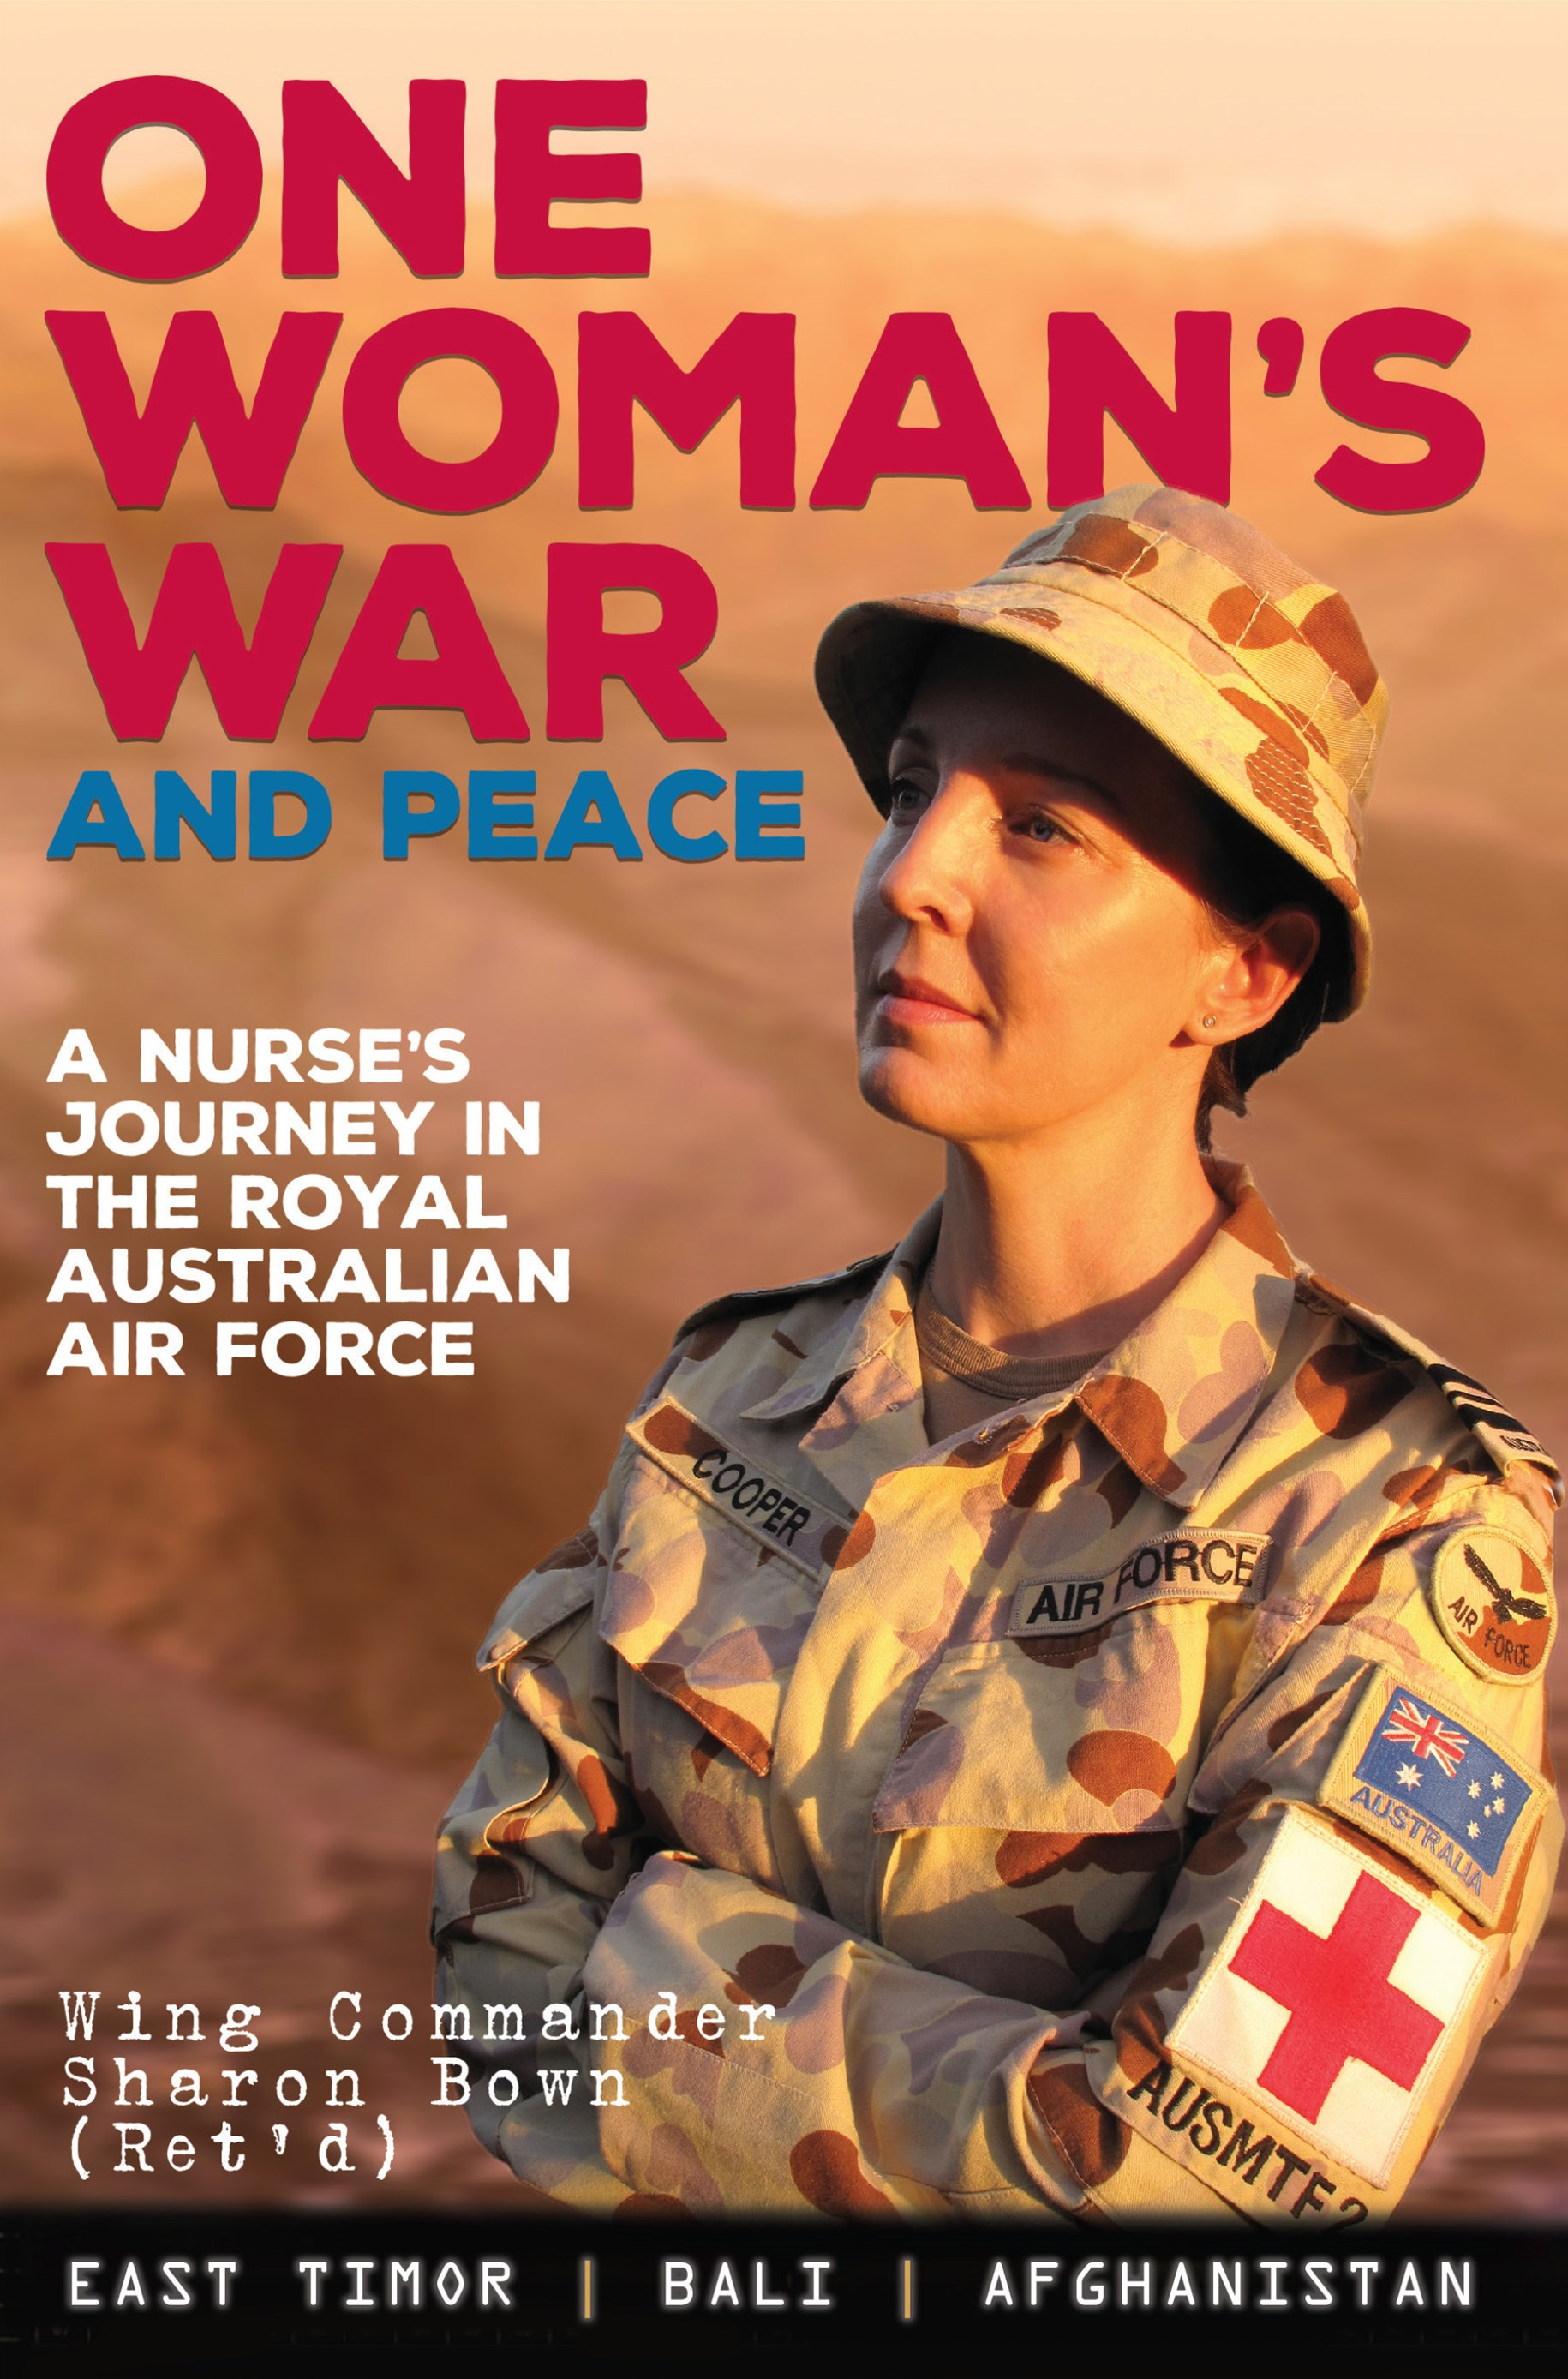 One Woman's War and Peace: A Nurse's Journey in the Royal Australian AirForce